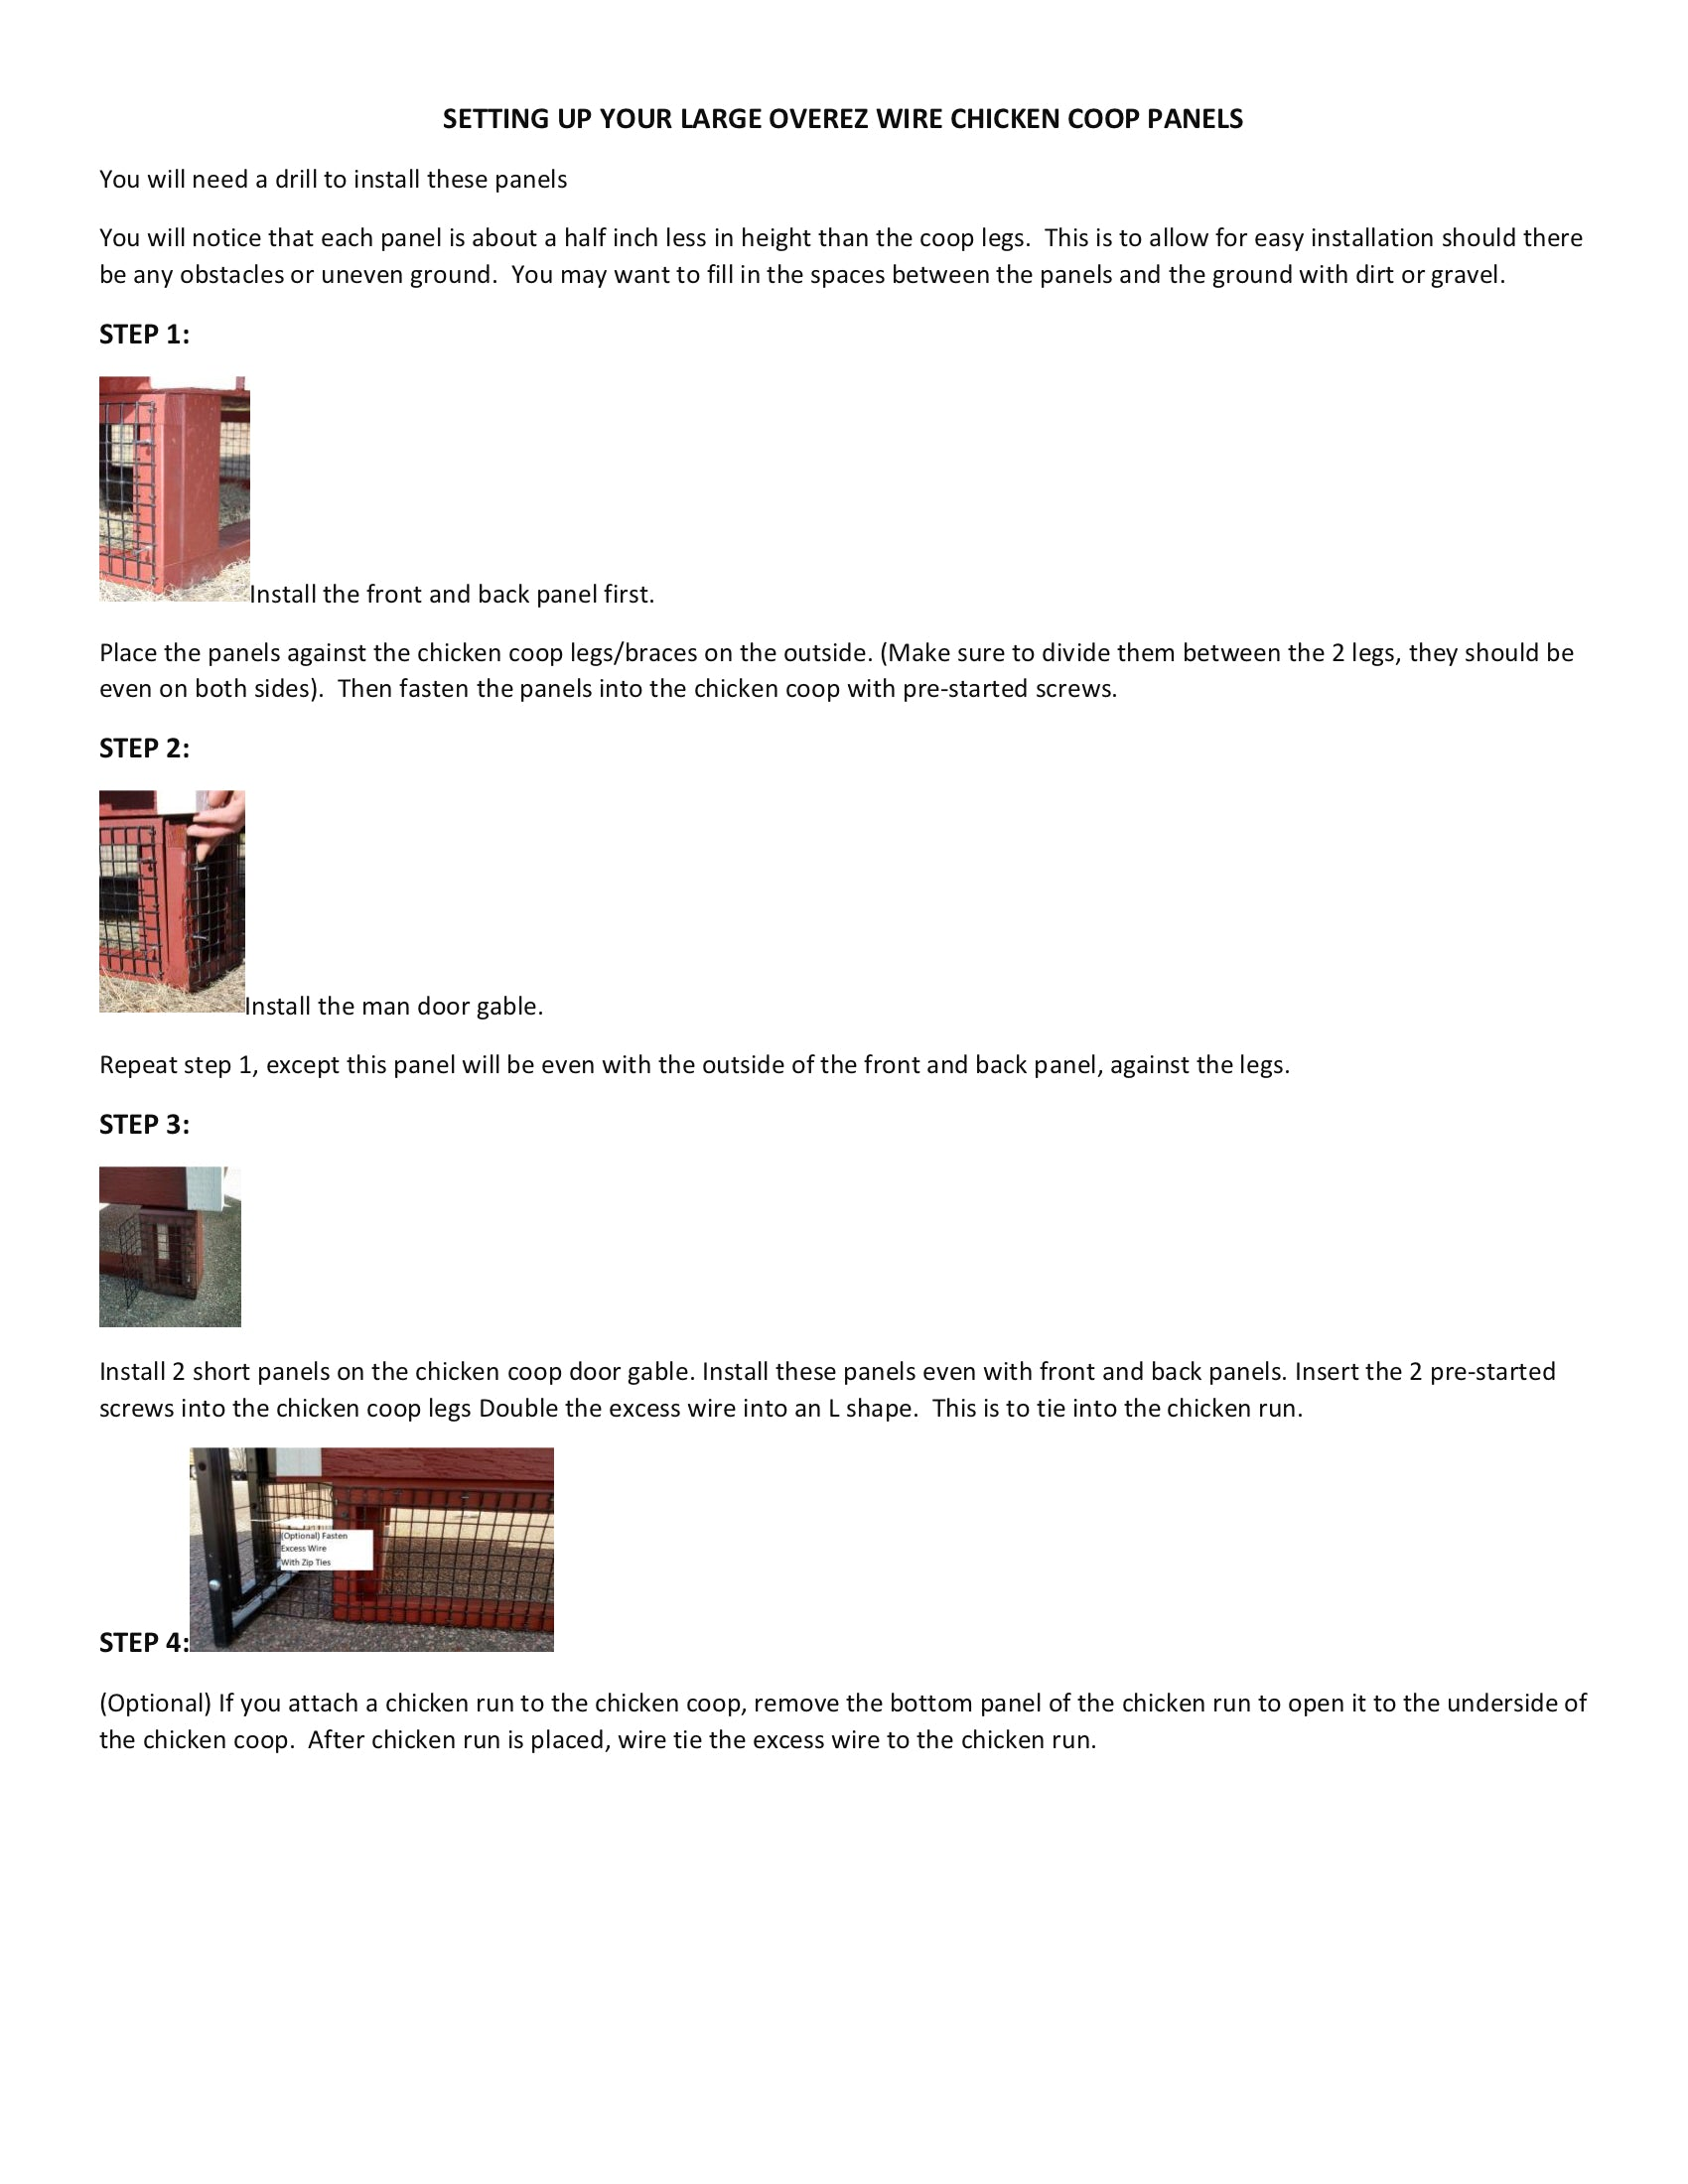 Large OverEZ Wire Chicken Coop Panels Instruction Sheet 2